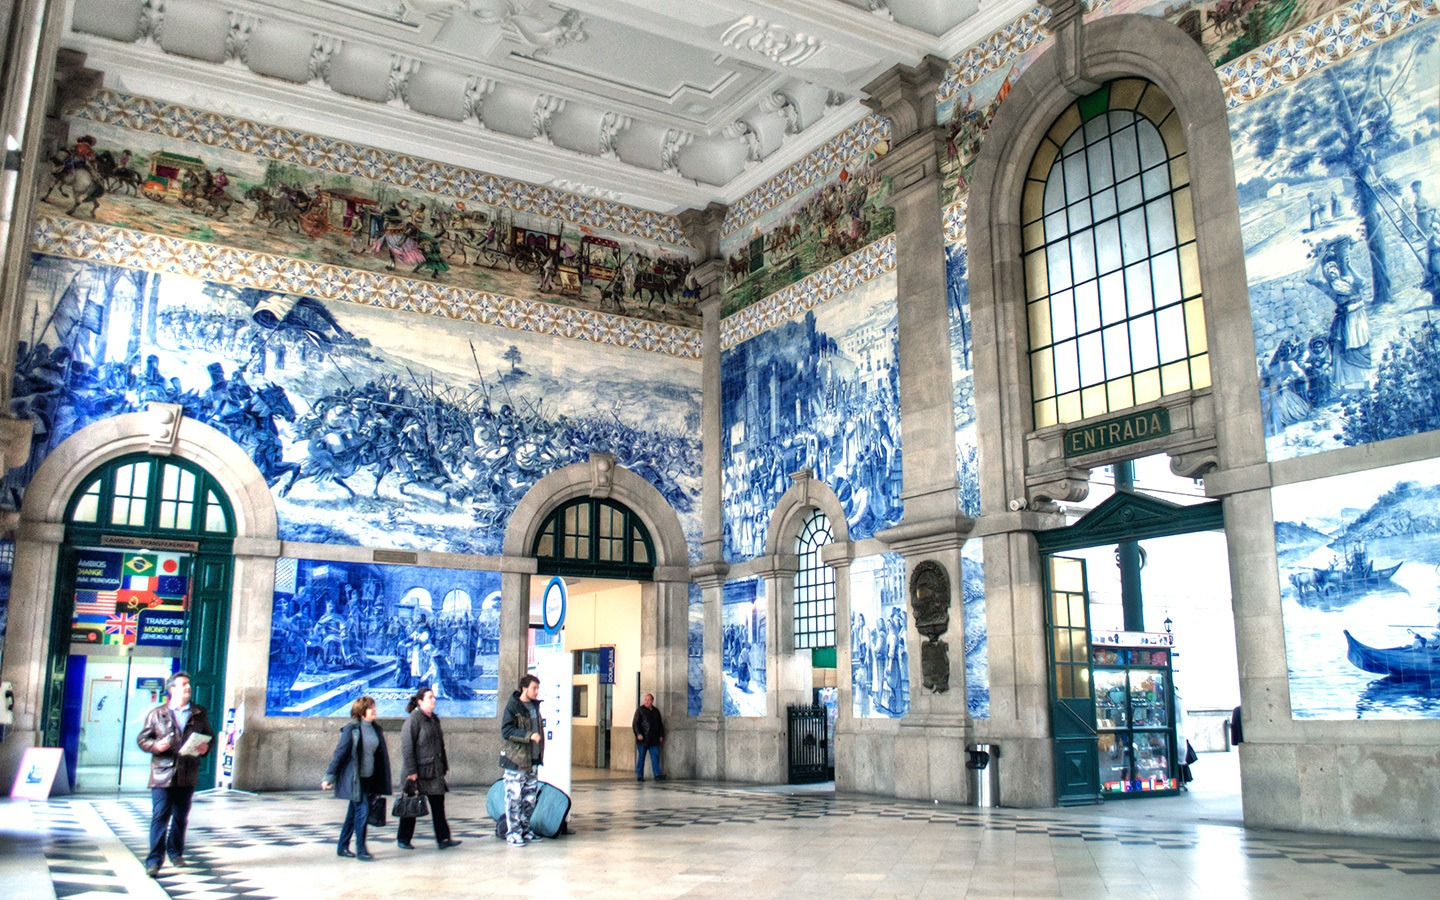 Blue and white tiles in São Bento train station